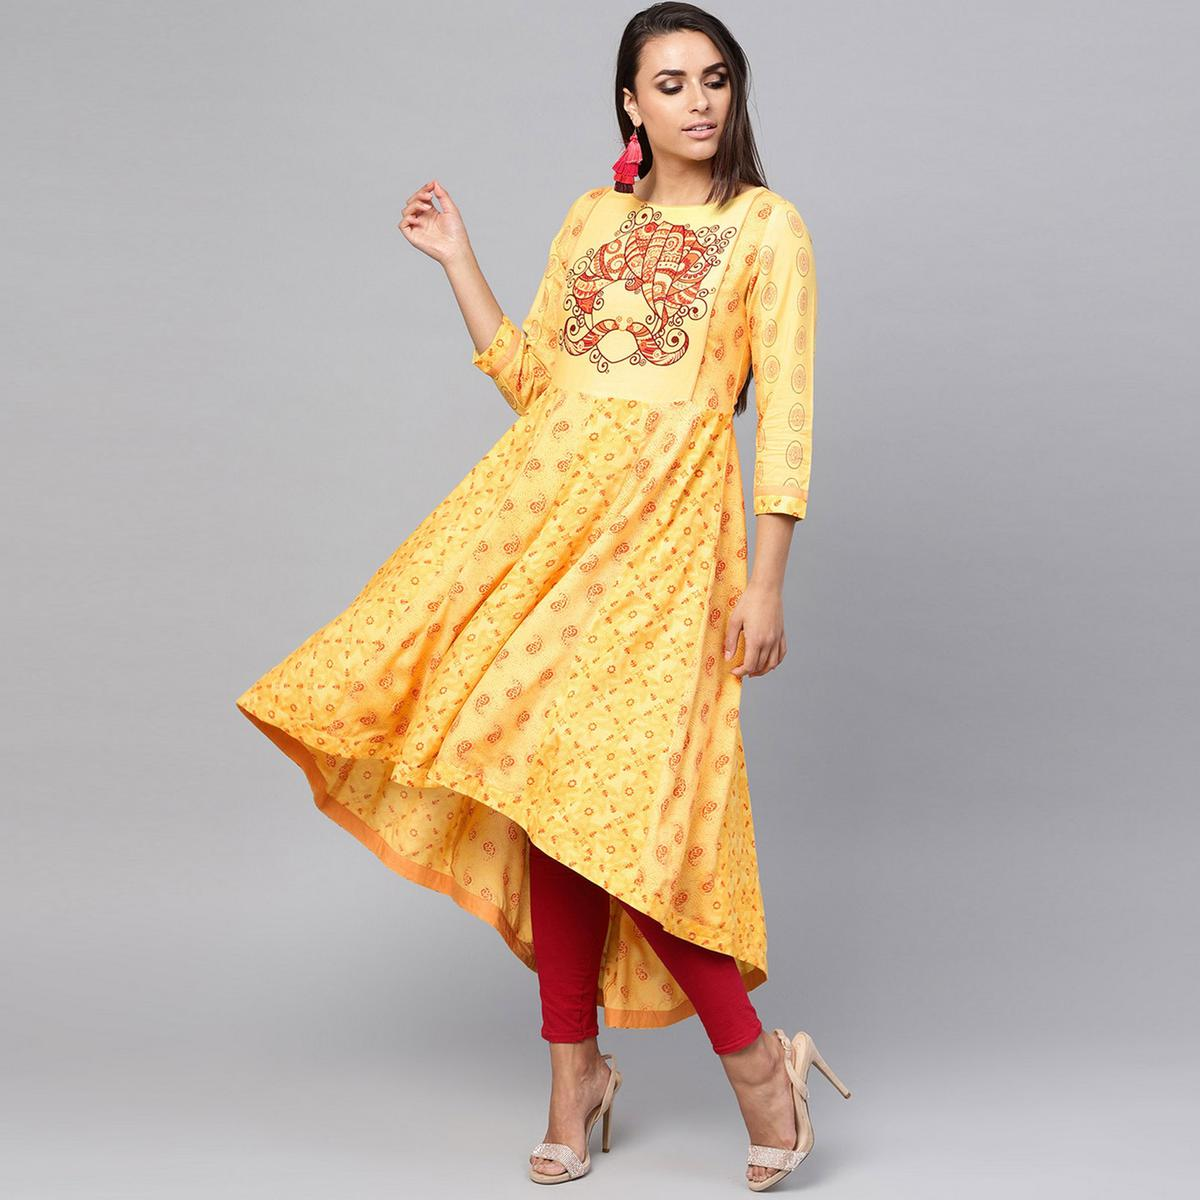 Blooming Yellow Colored Party Wear Printed Rayon Kurti